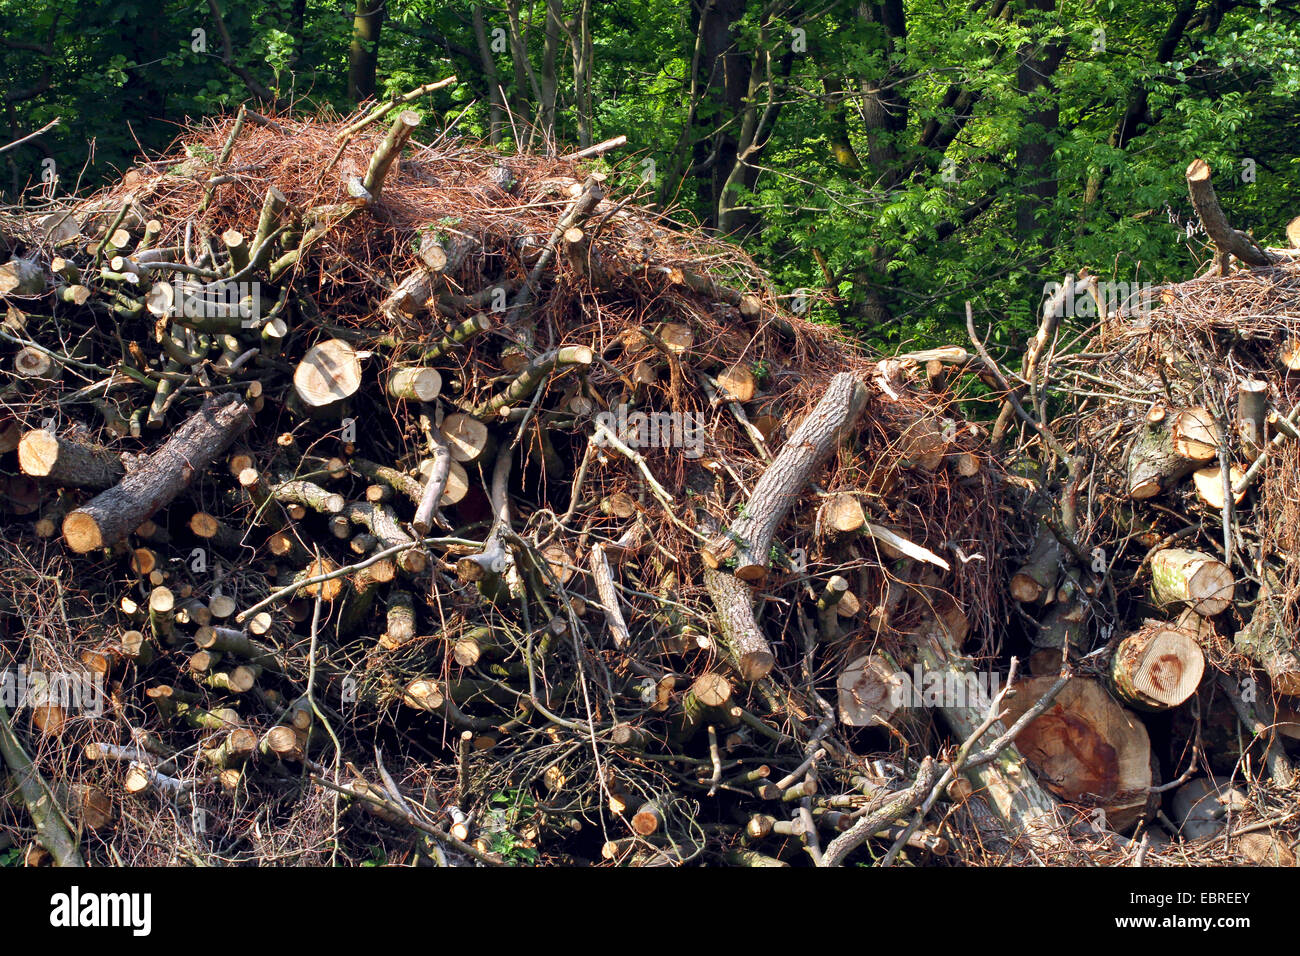 boughs and stems after a clearing in the forest, Germany - Stock Image